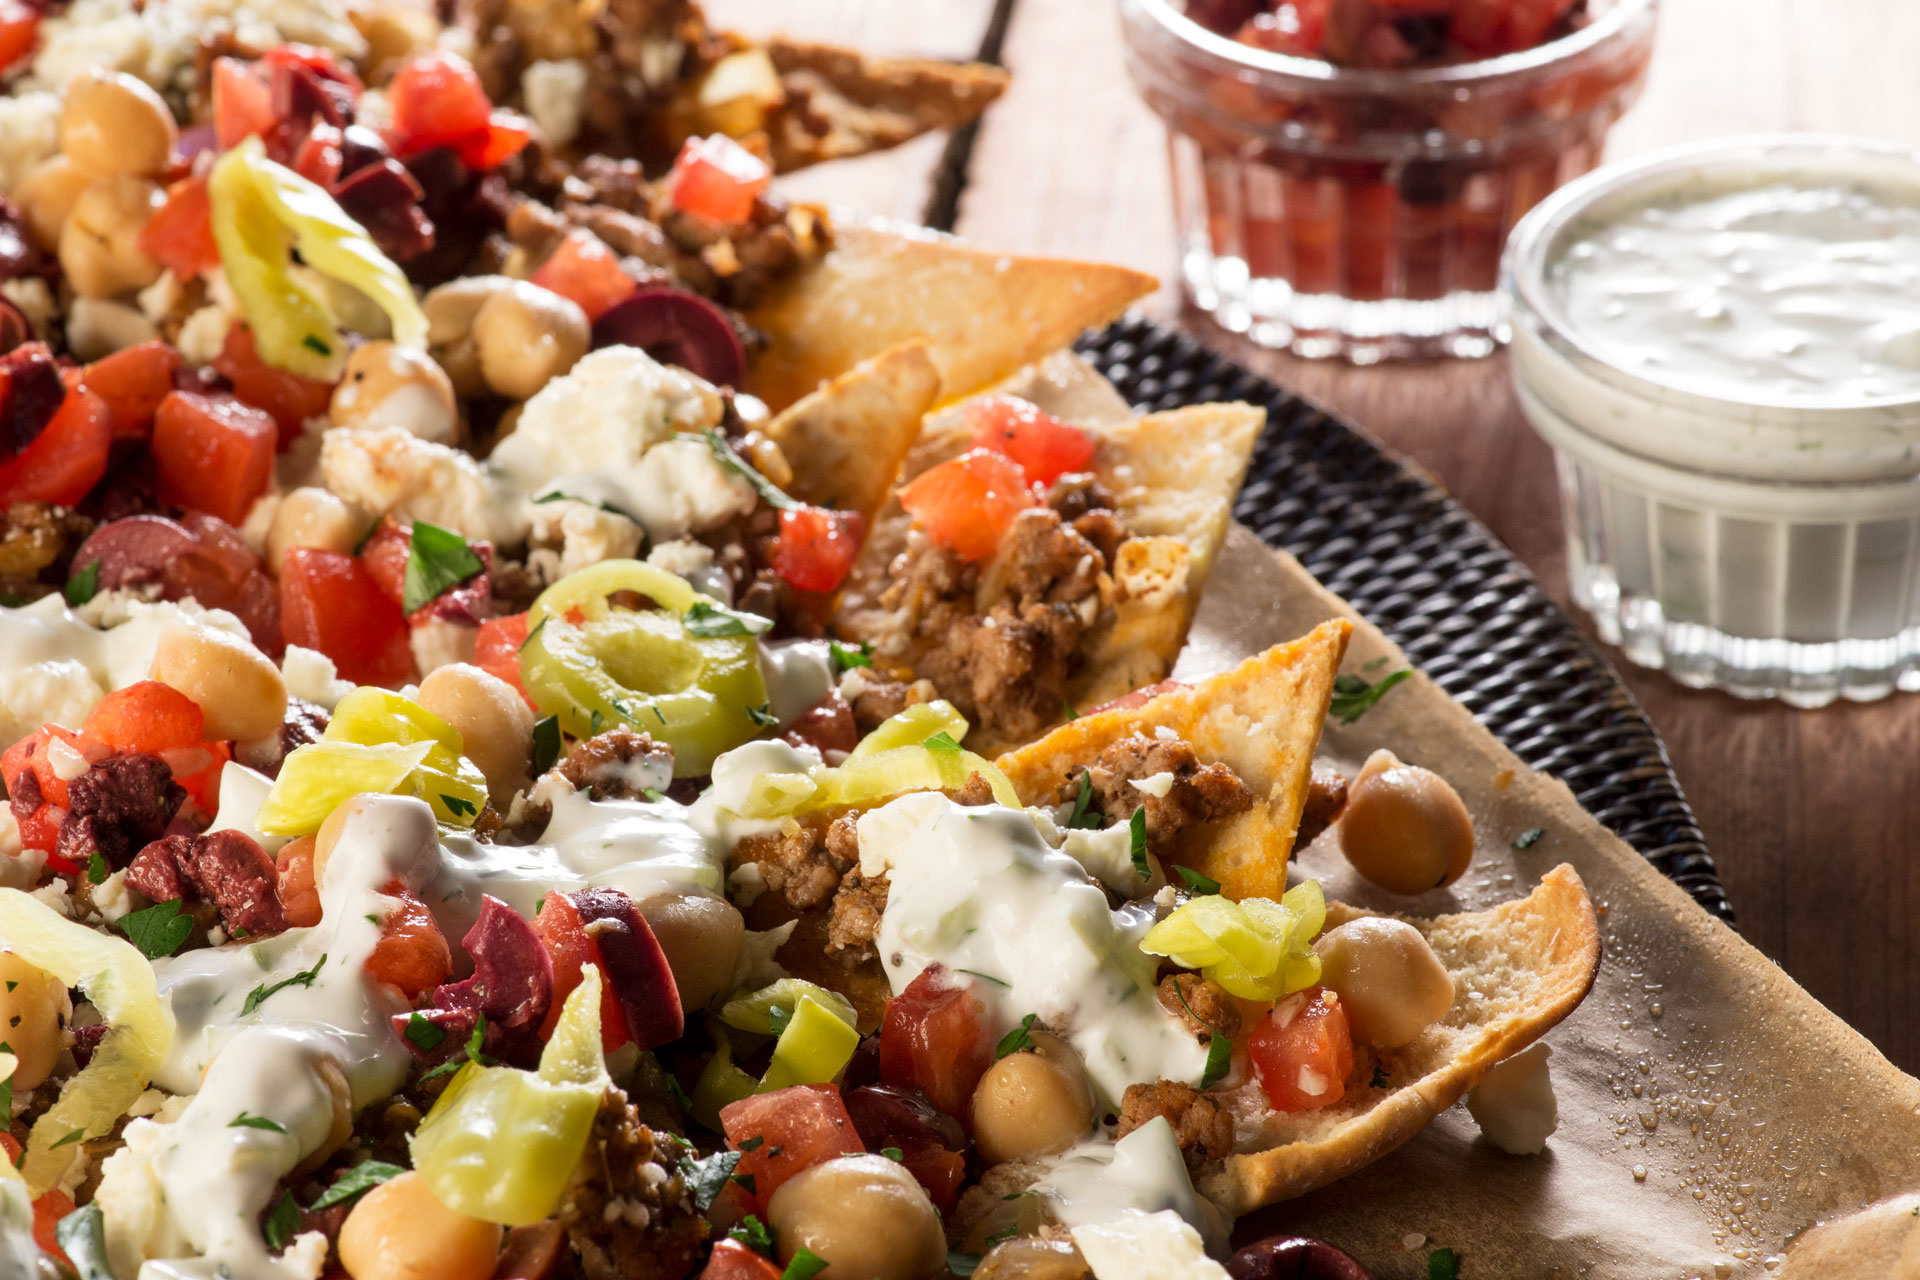 Own Your Party with this epic Greek nachos recipe using Aussie lamb! You'll get spicy Australian lamb served on fresh-baked pita chips with feta cheese, Mediterranean olive pico de gallo and tzatziki sauce.